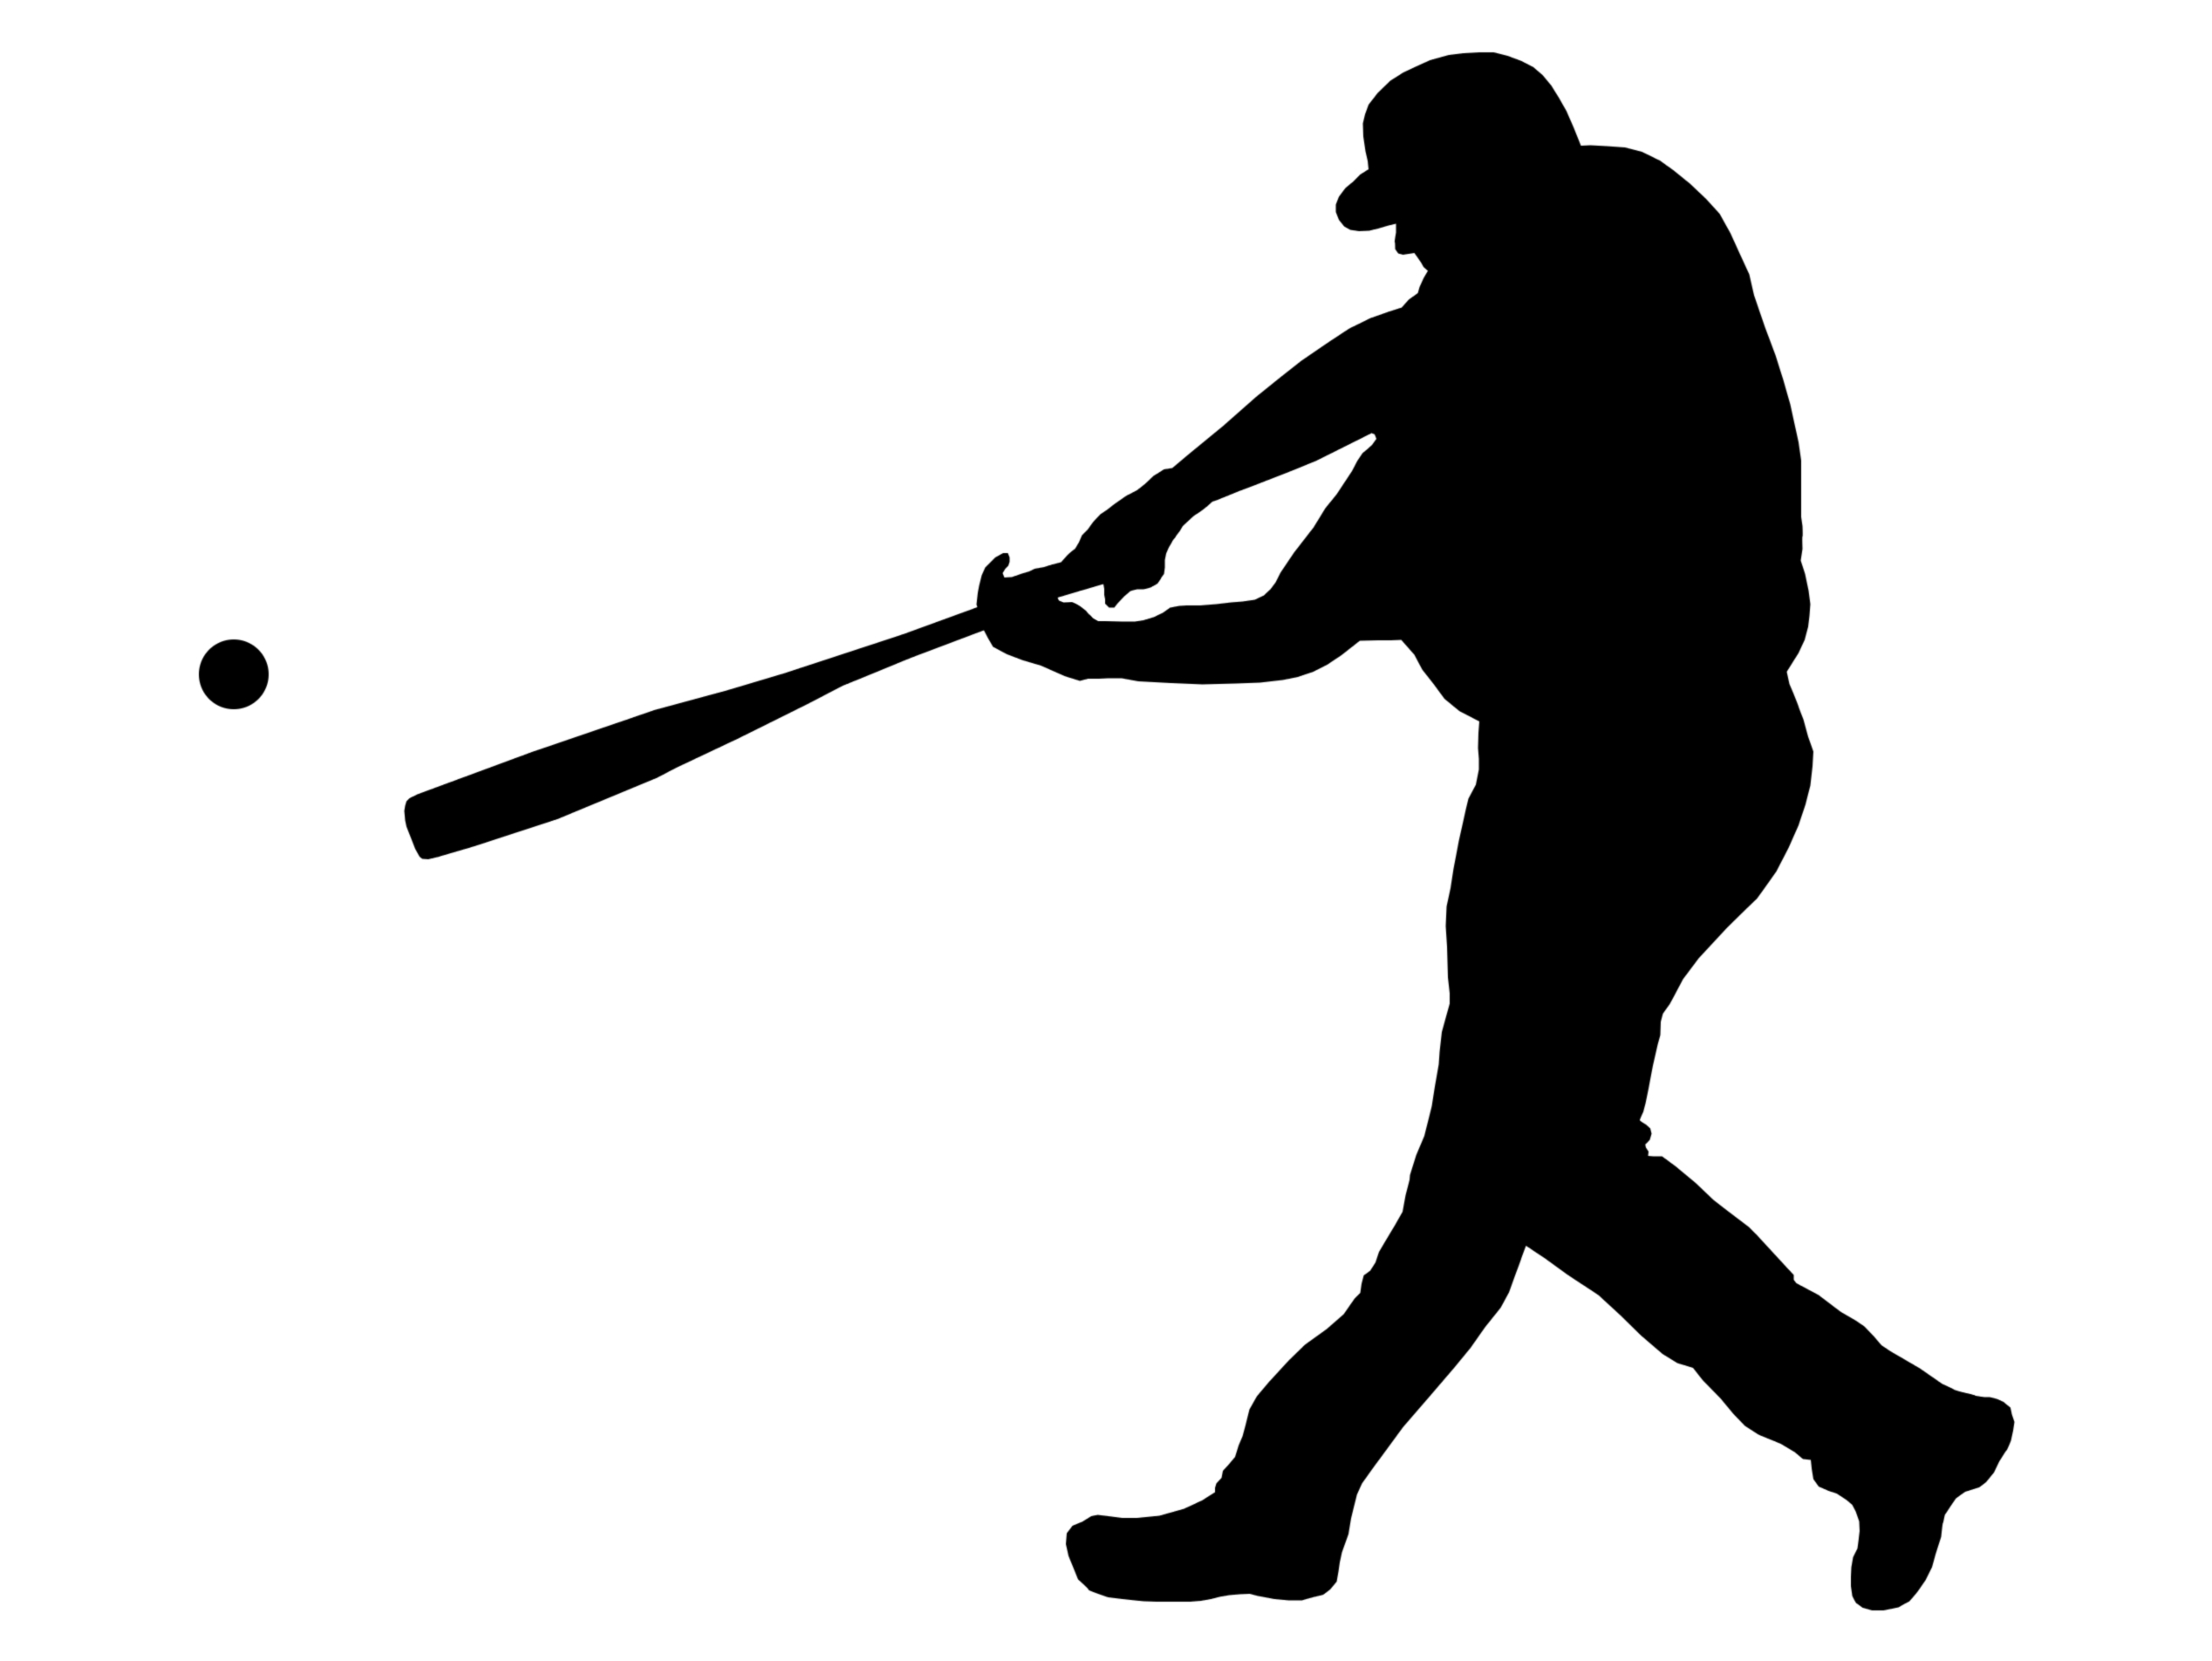 softball silhouette clip art at getdrawings com free for personal rh getdrawings com  softball player clipart free